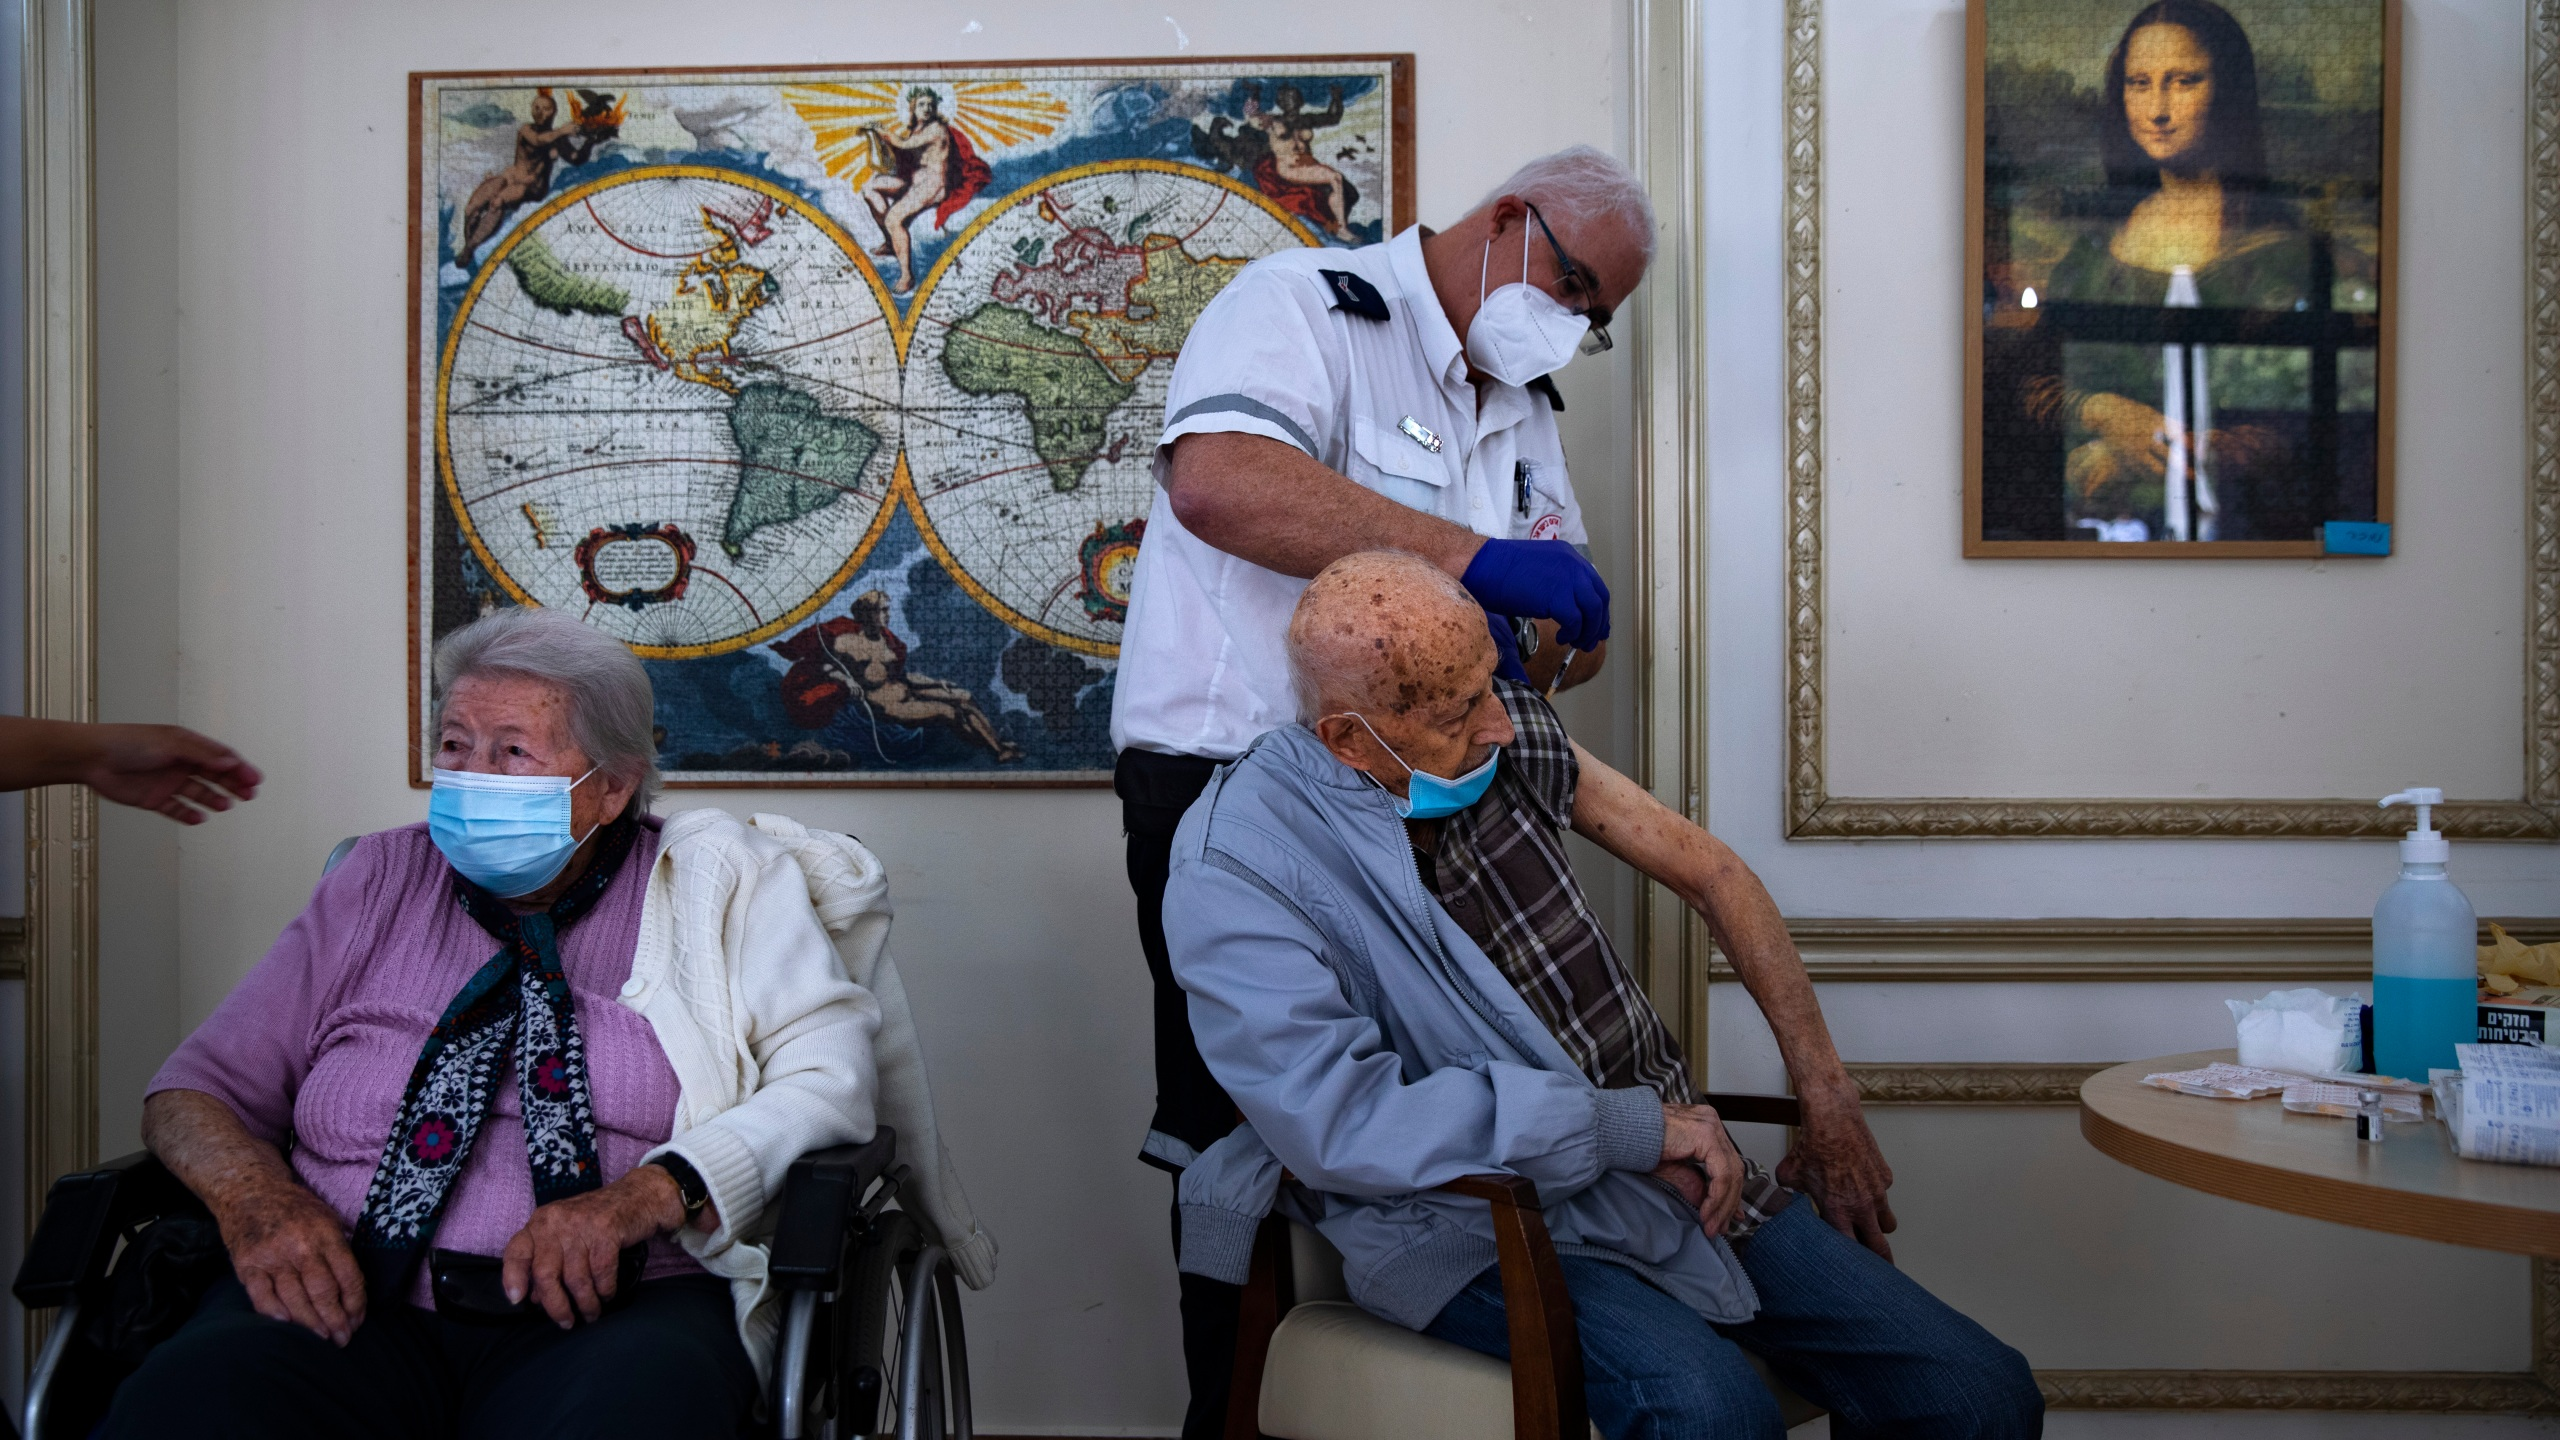 In this Jan. 13, 2021, file photo, a man receives his second Pfizer-BioNTech COVID-19 vaccine from a Magen David Adom national emergency service volunteer, at a private nursing home, in Ramat Gan, Israel. (AP Photo/Oded Balilty, File)